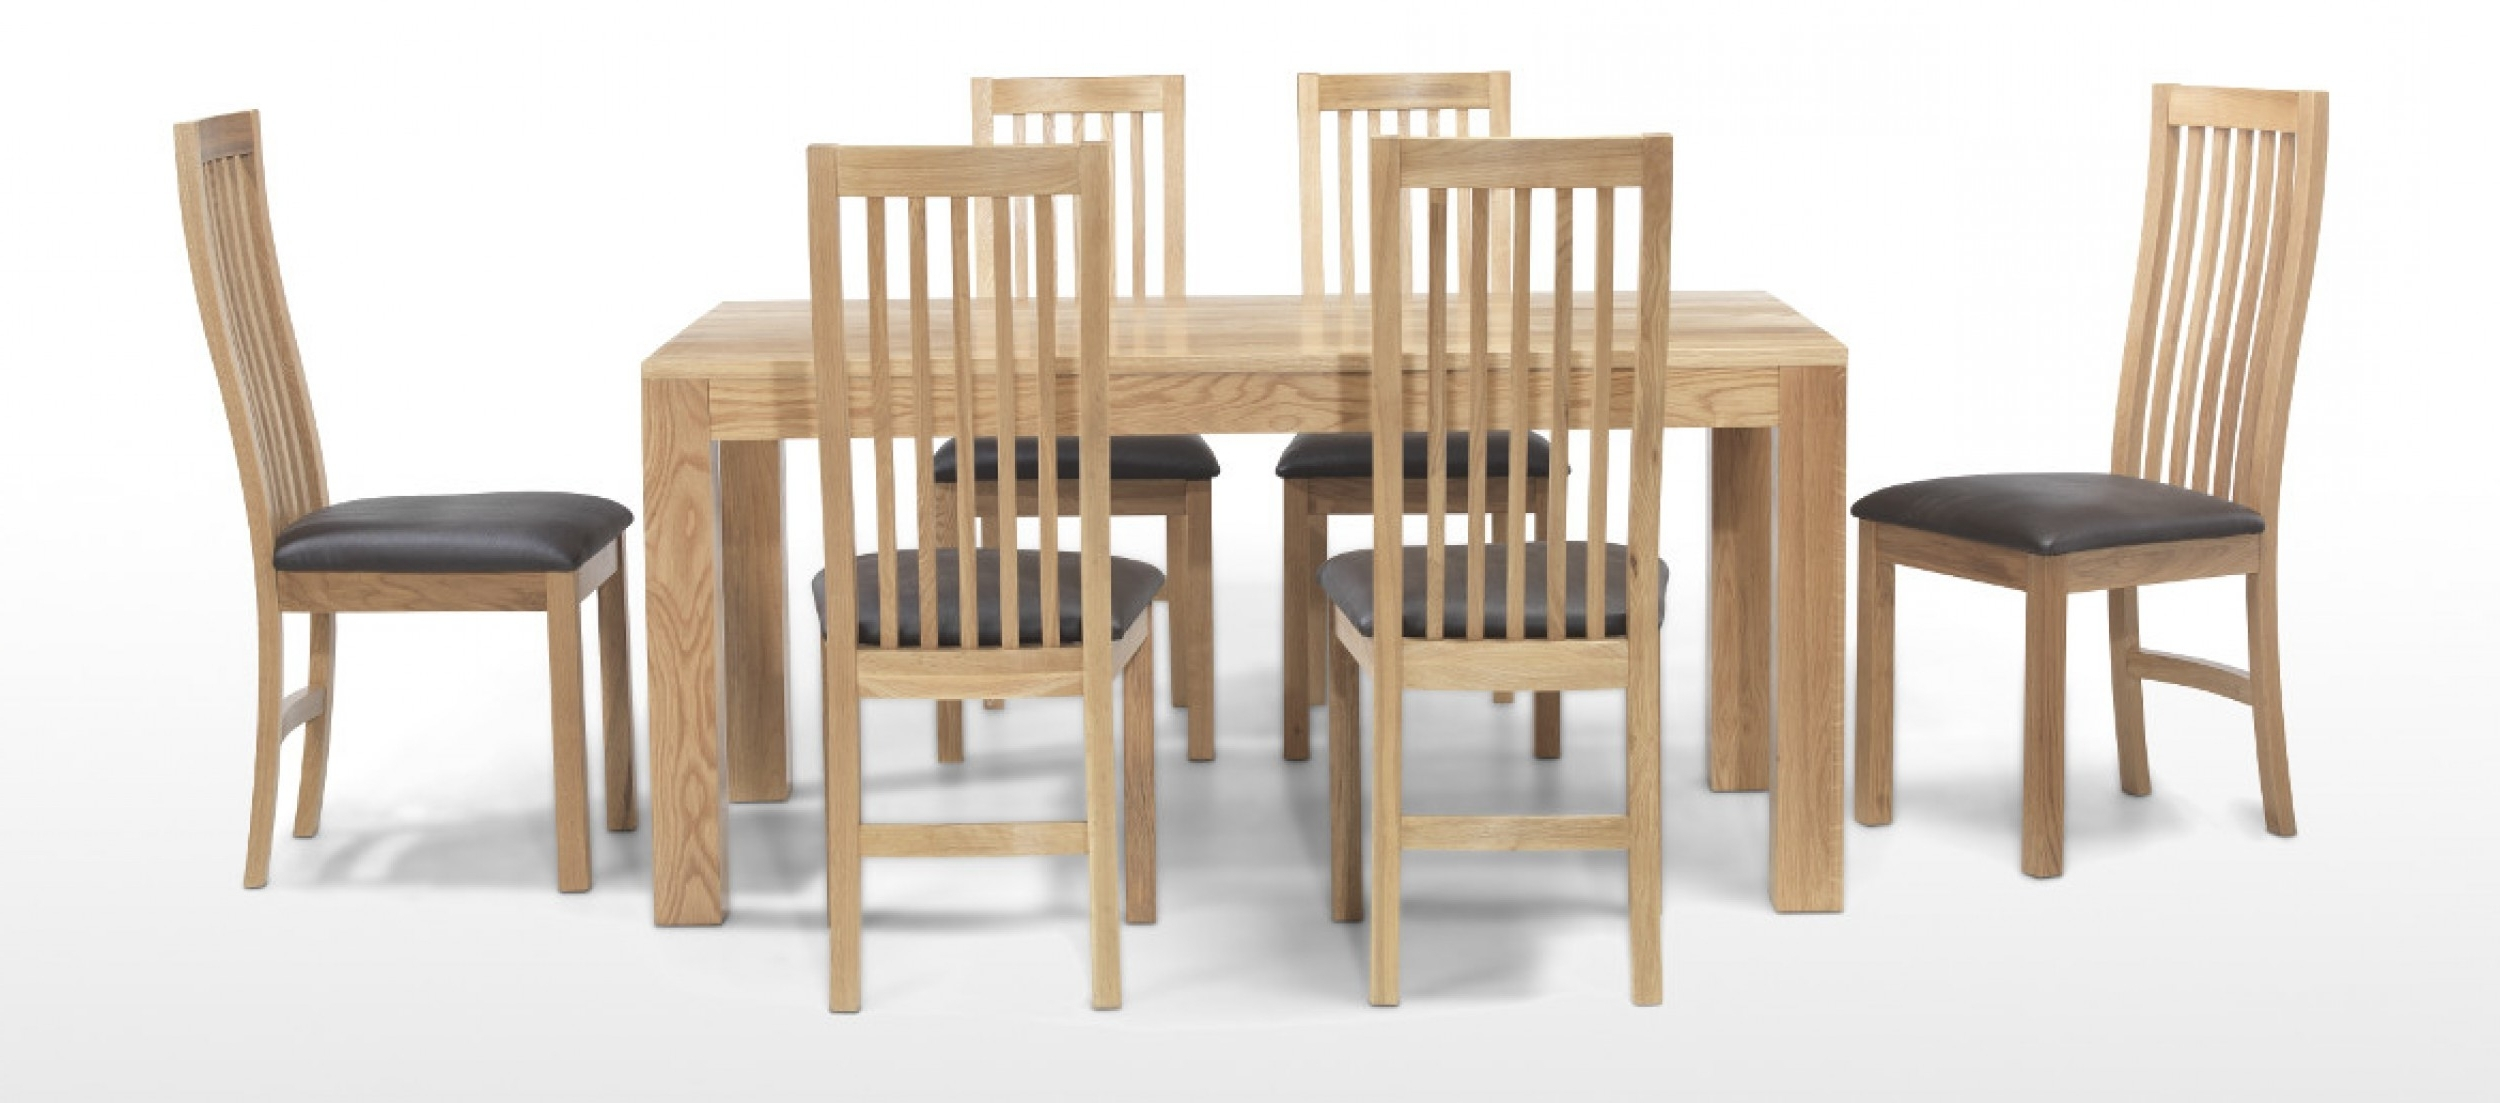 Quercus Living Intended For Current 6 Seat Dining Tables And Chairs (View 21 of 25)